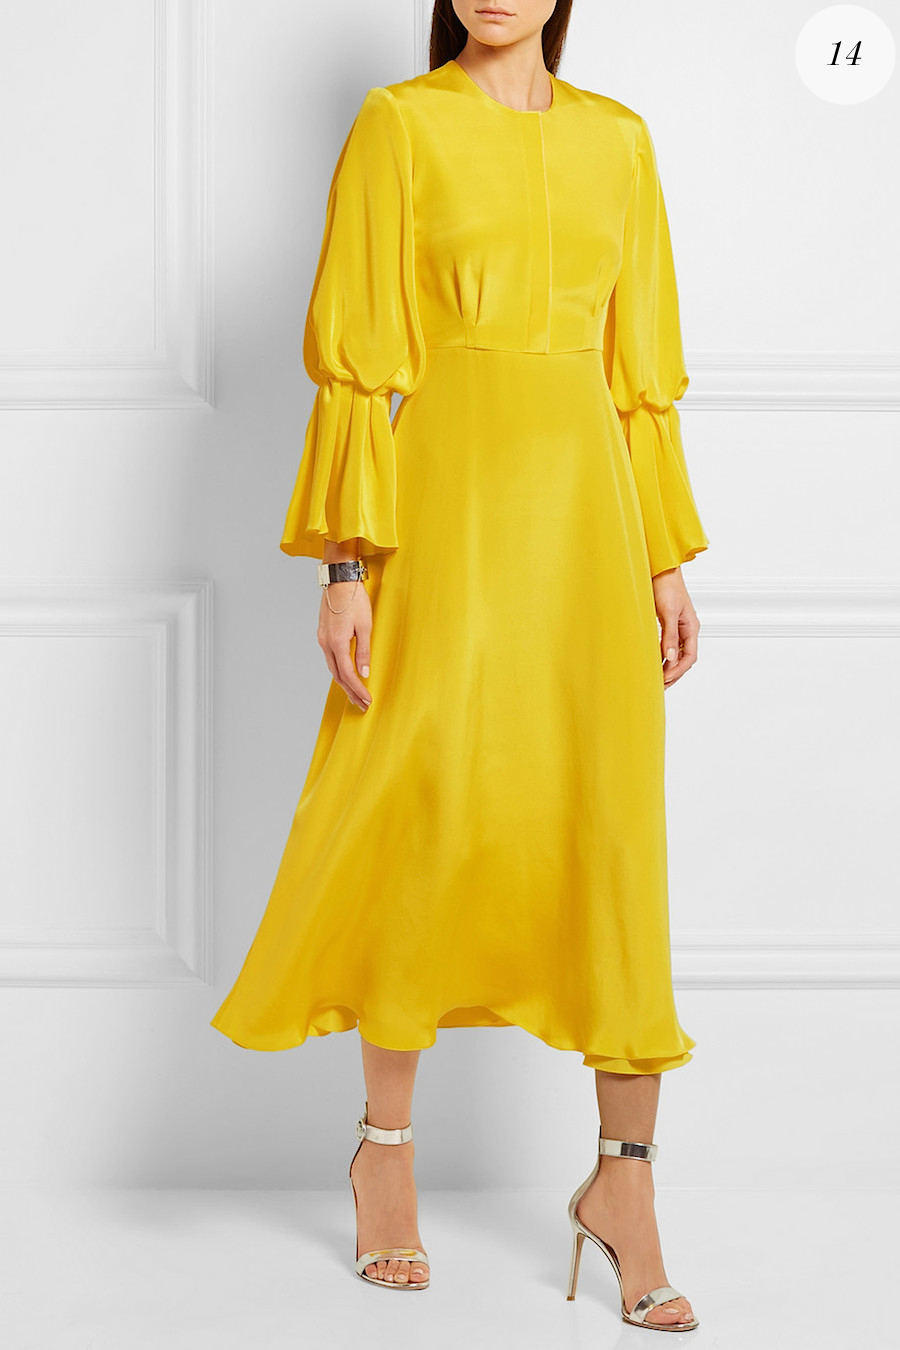 Wedding guest dresses fash-n-chips.com 14